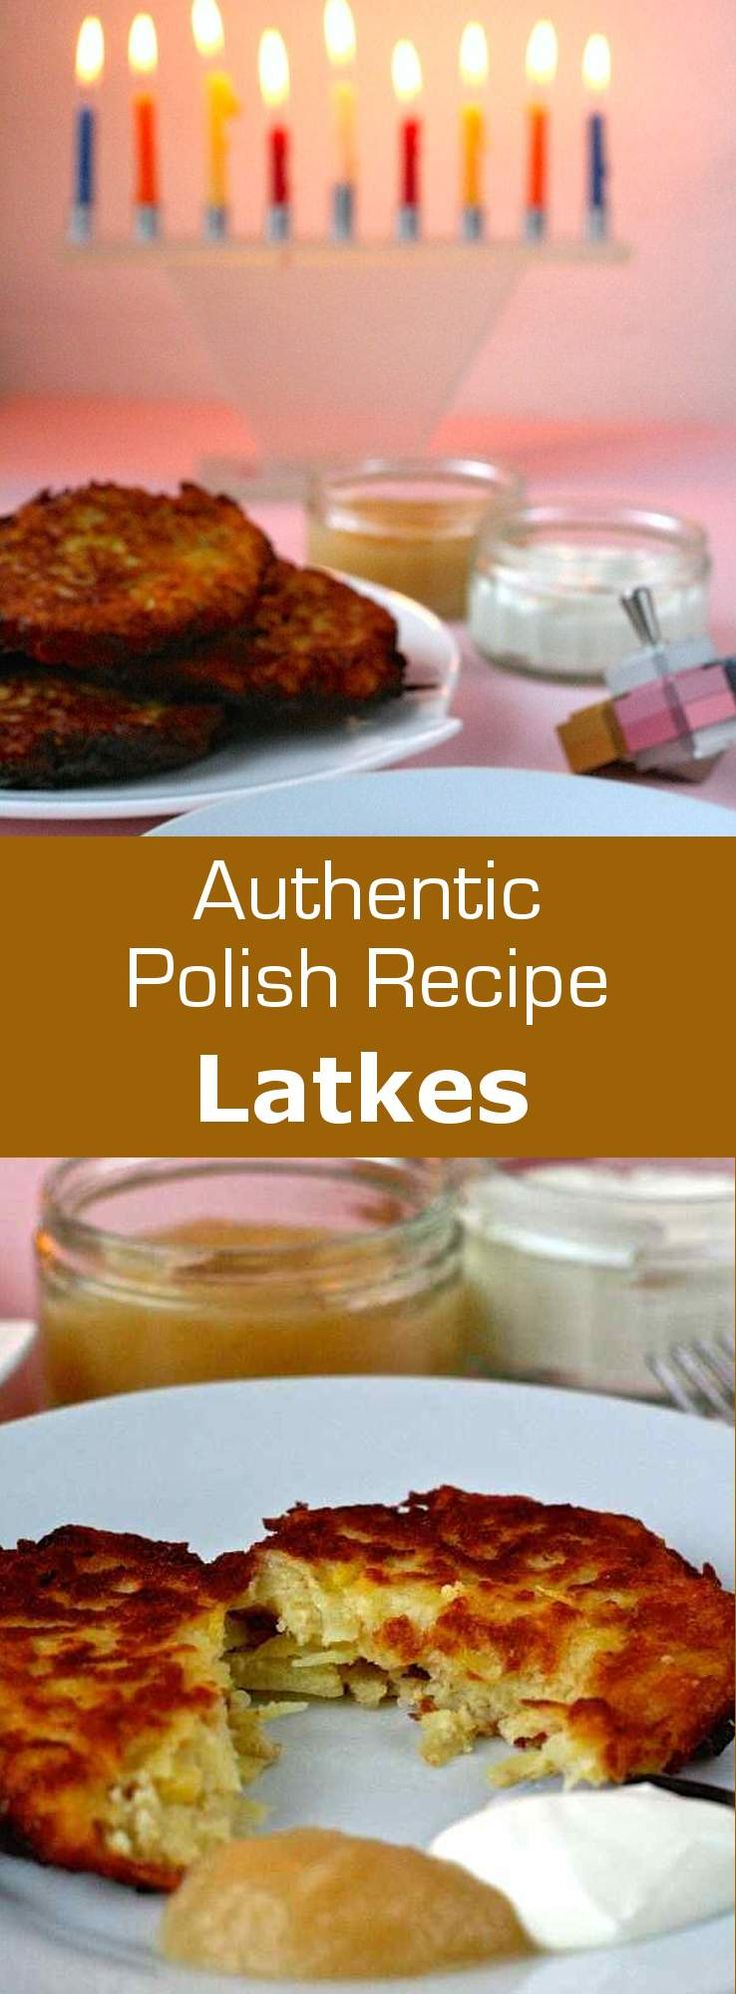 Polish traditional latkes are potato hash browns served with applesauce and sour cream during Chanukah.